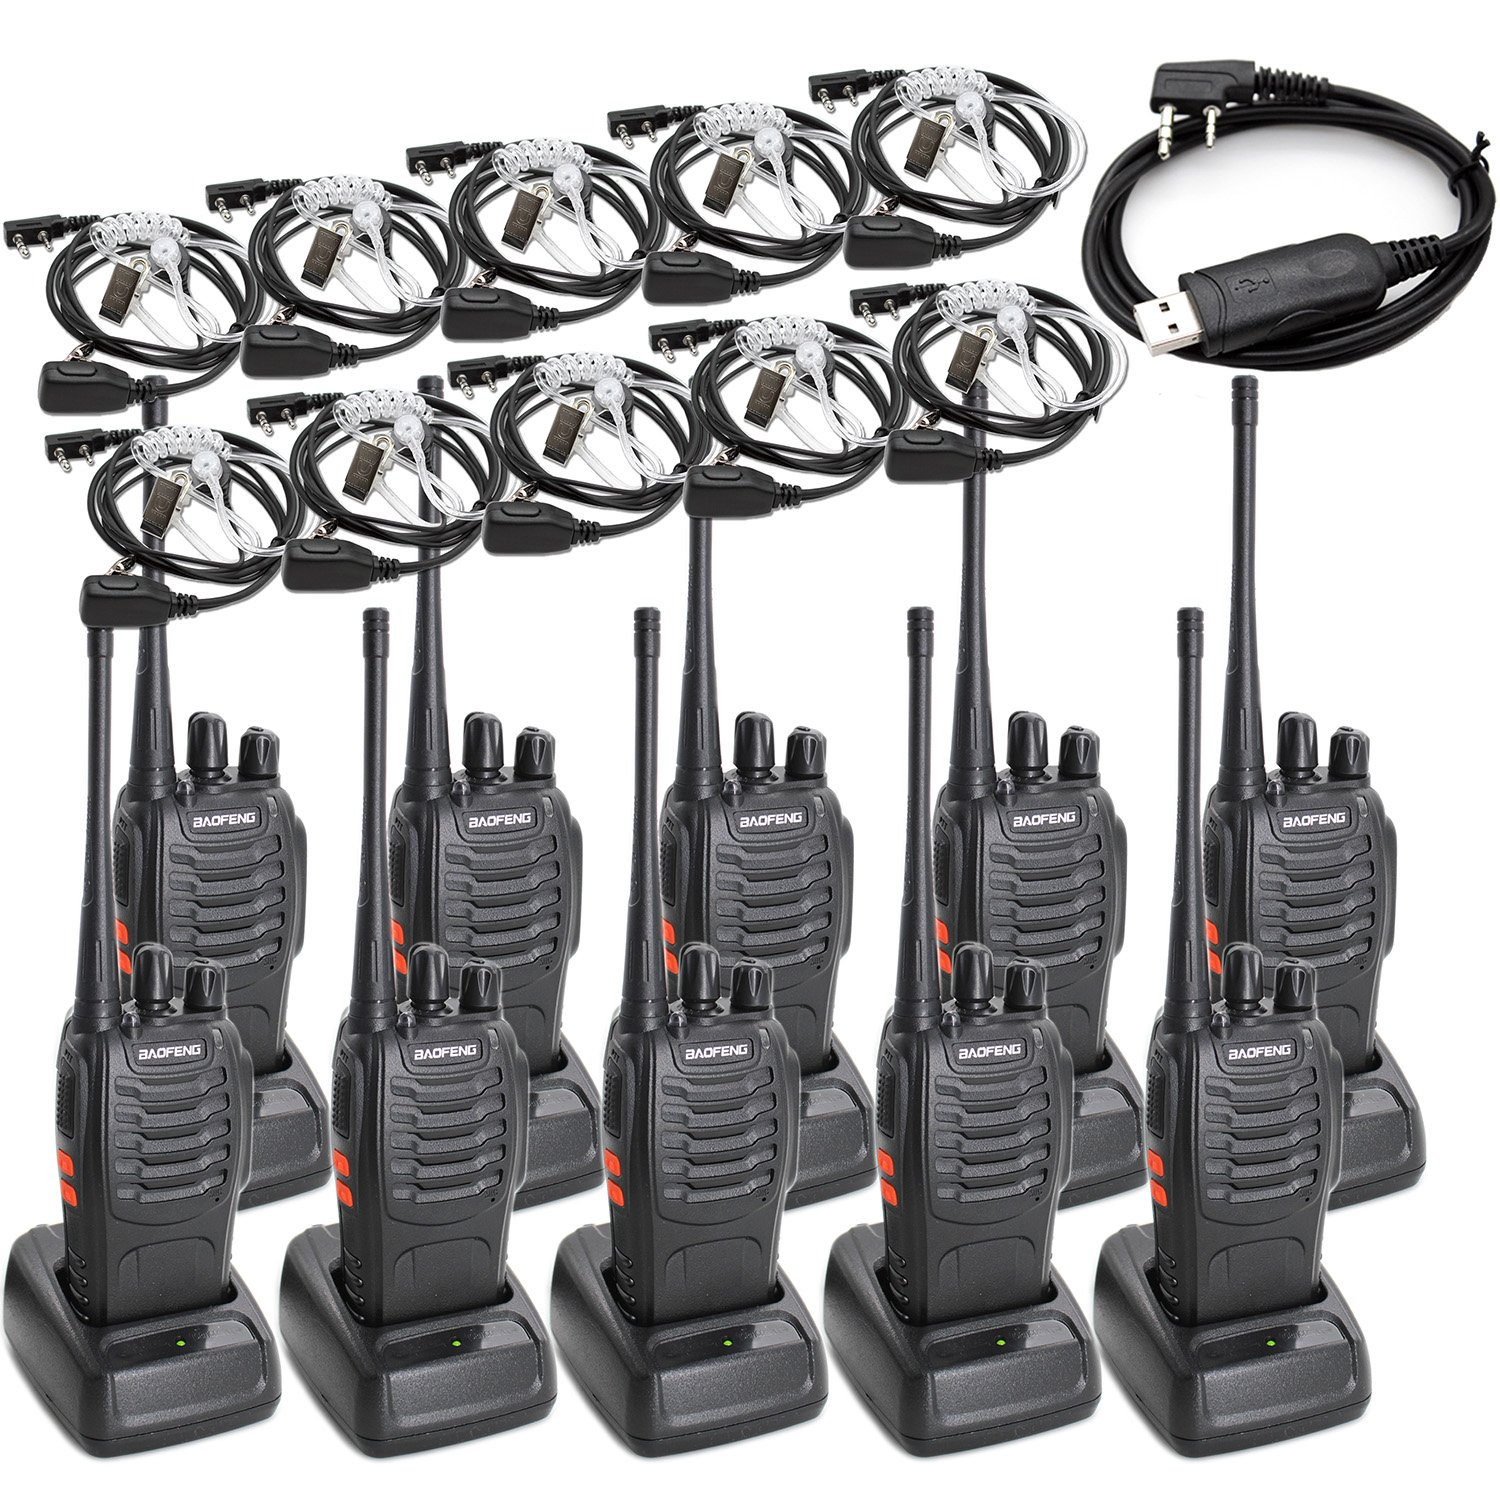 Baofeng BF-888S Two Way Radio Long Range 16 CH Baofeng Radio and Covert Air Acoustic Tube Earpiece (Pack of 10) by BaoFeng